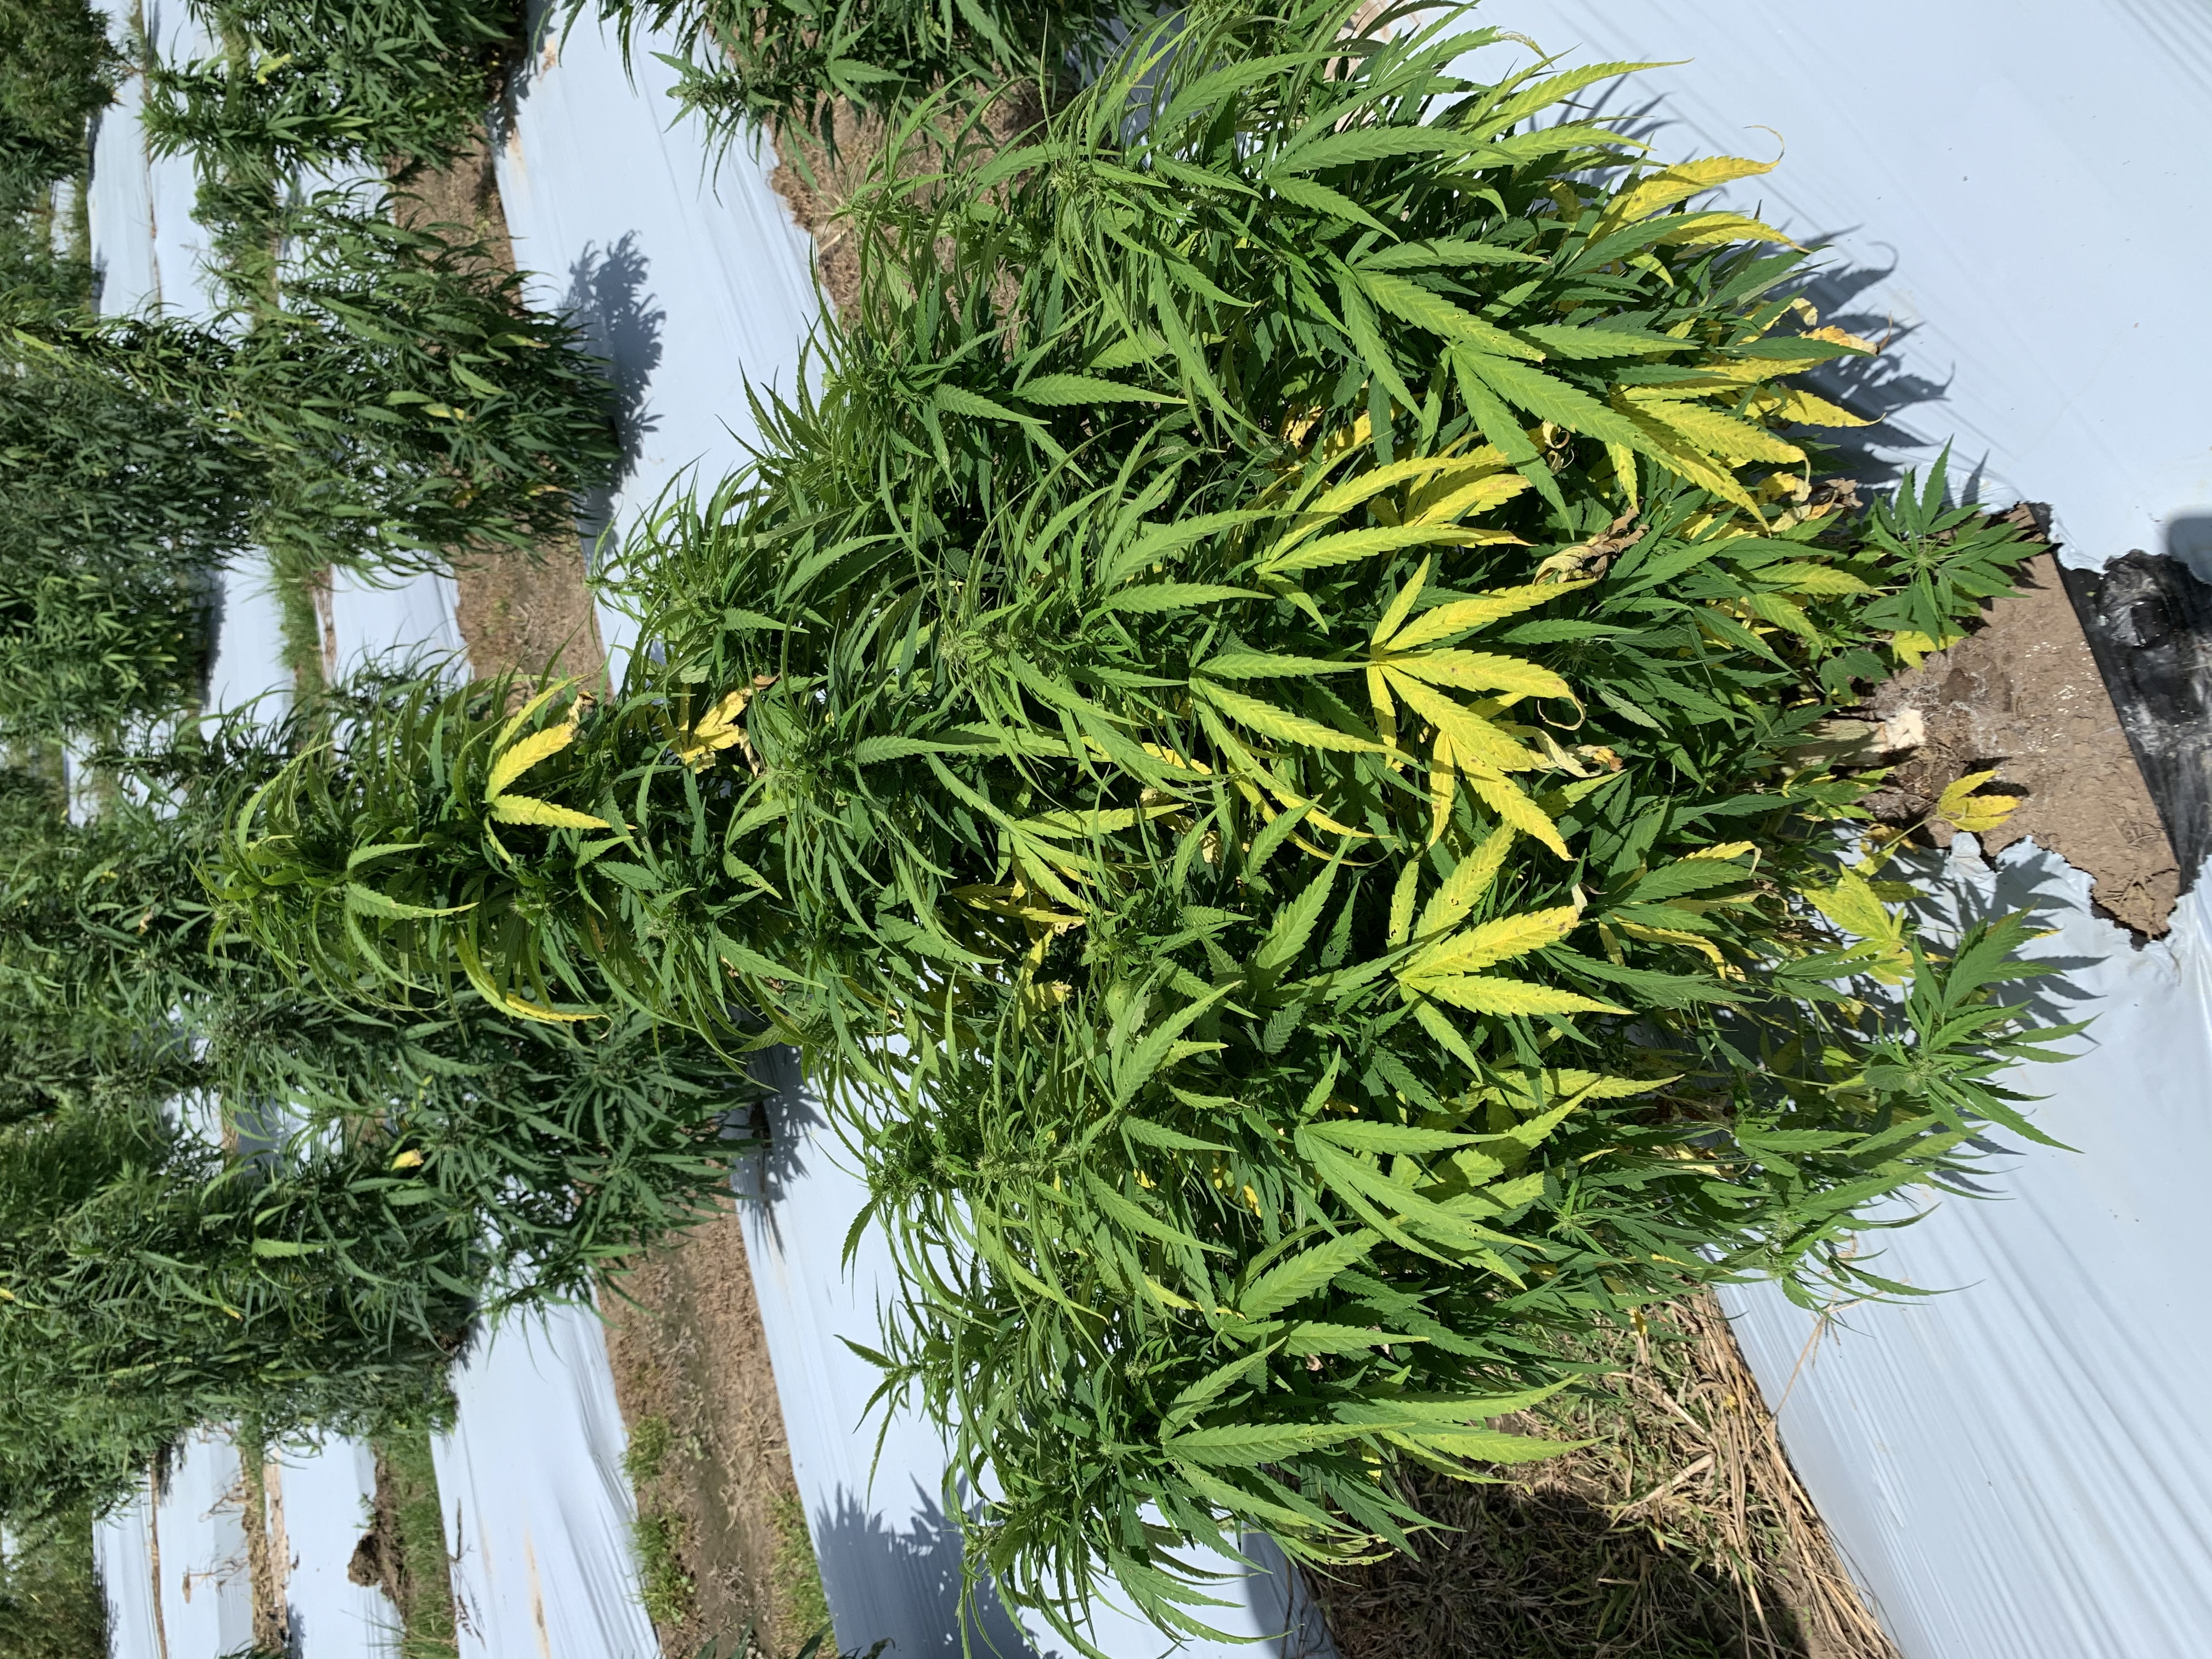 Infected industrial hemp plant with yellow leaves.